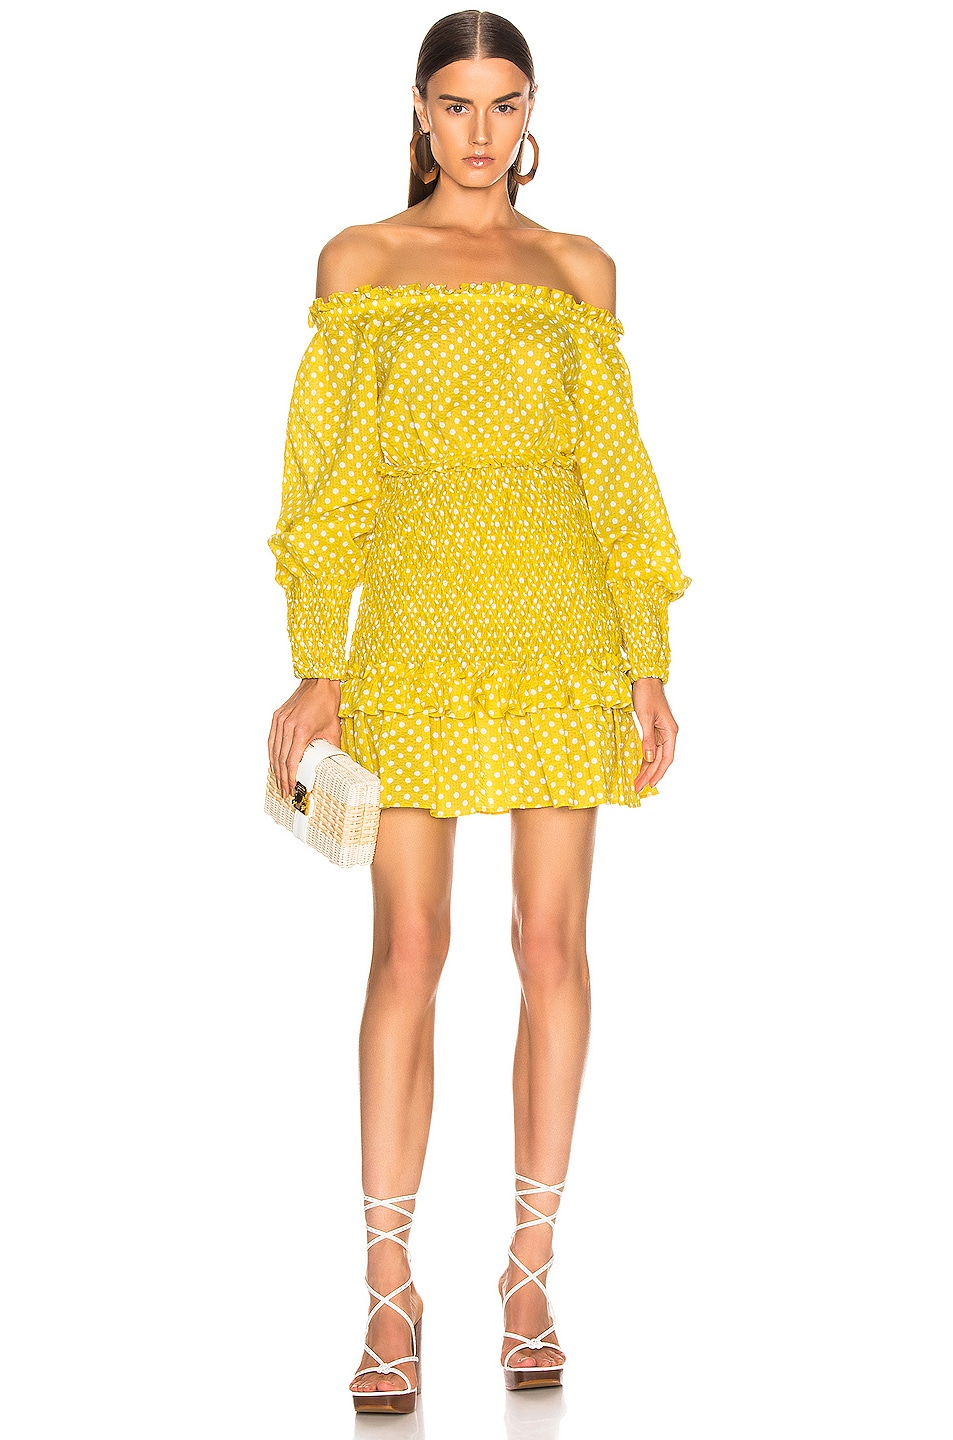 Image 1 of Alexis Marilena Dress in Yellow Dot